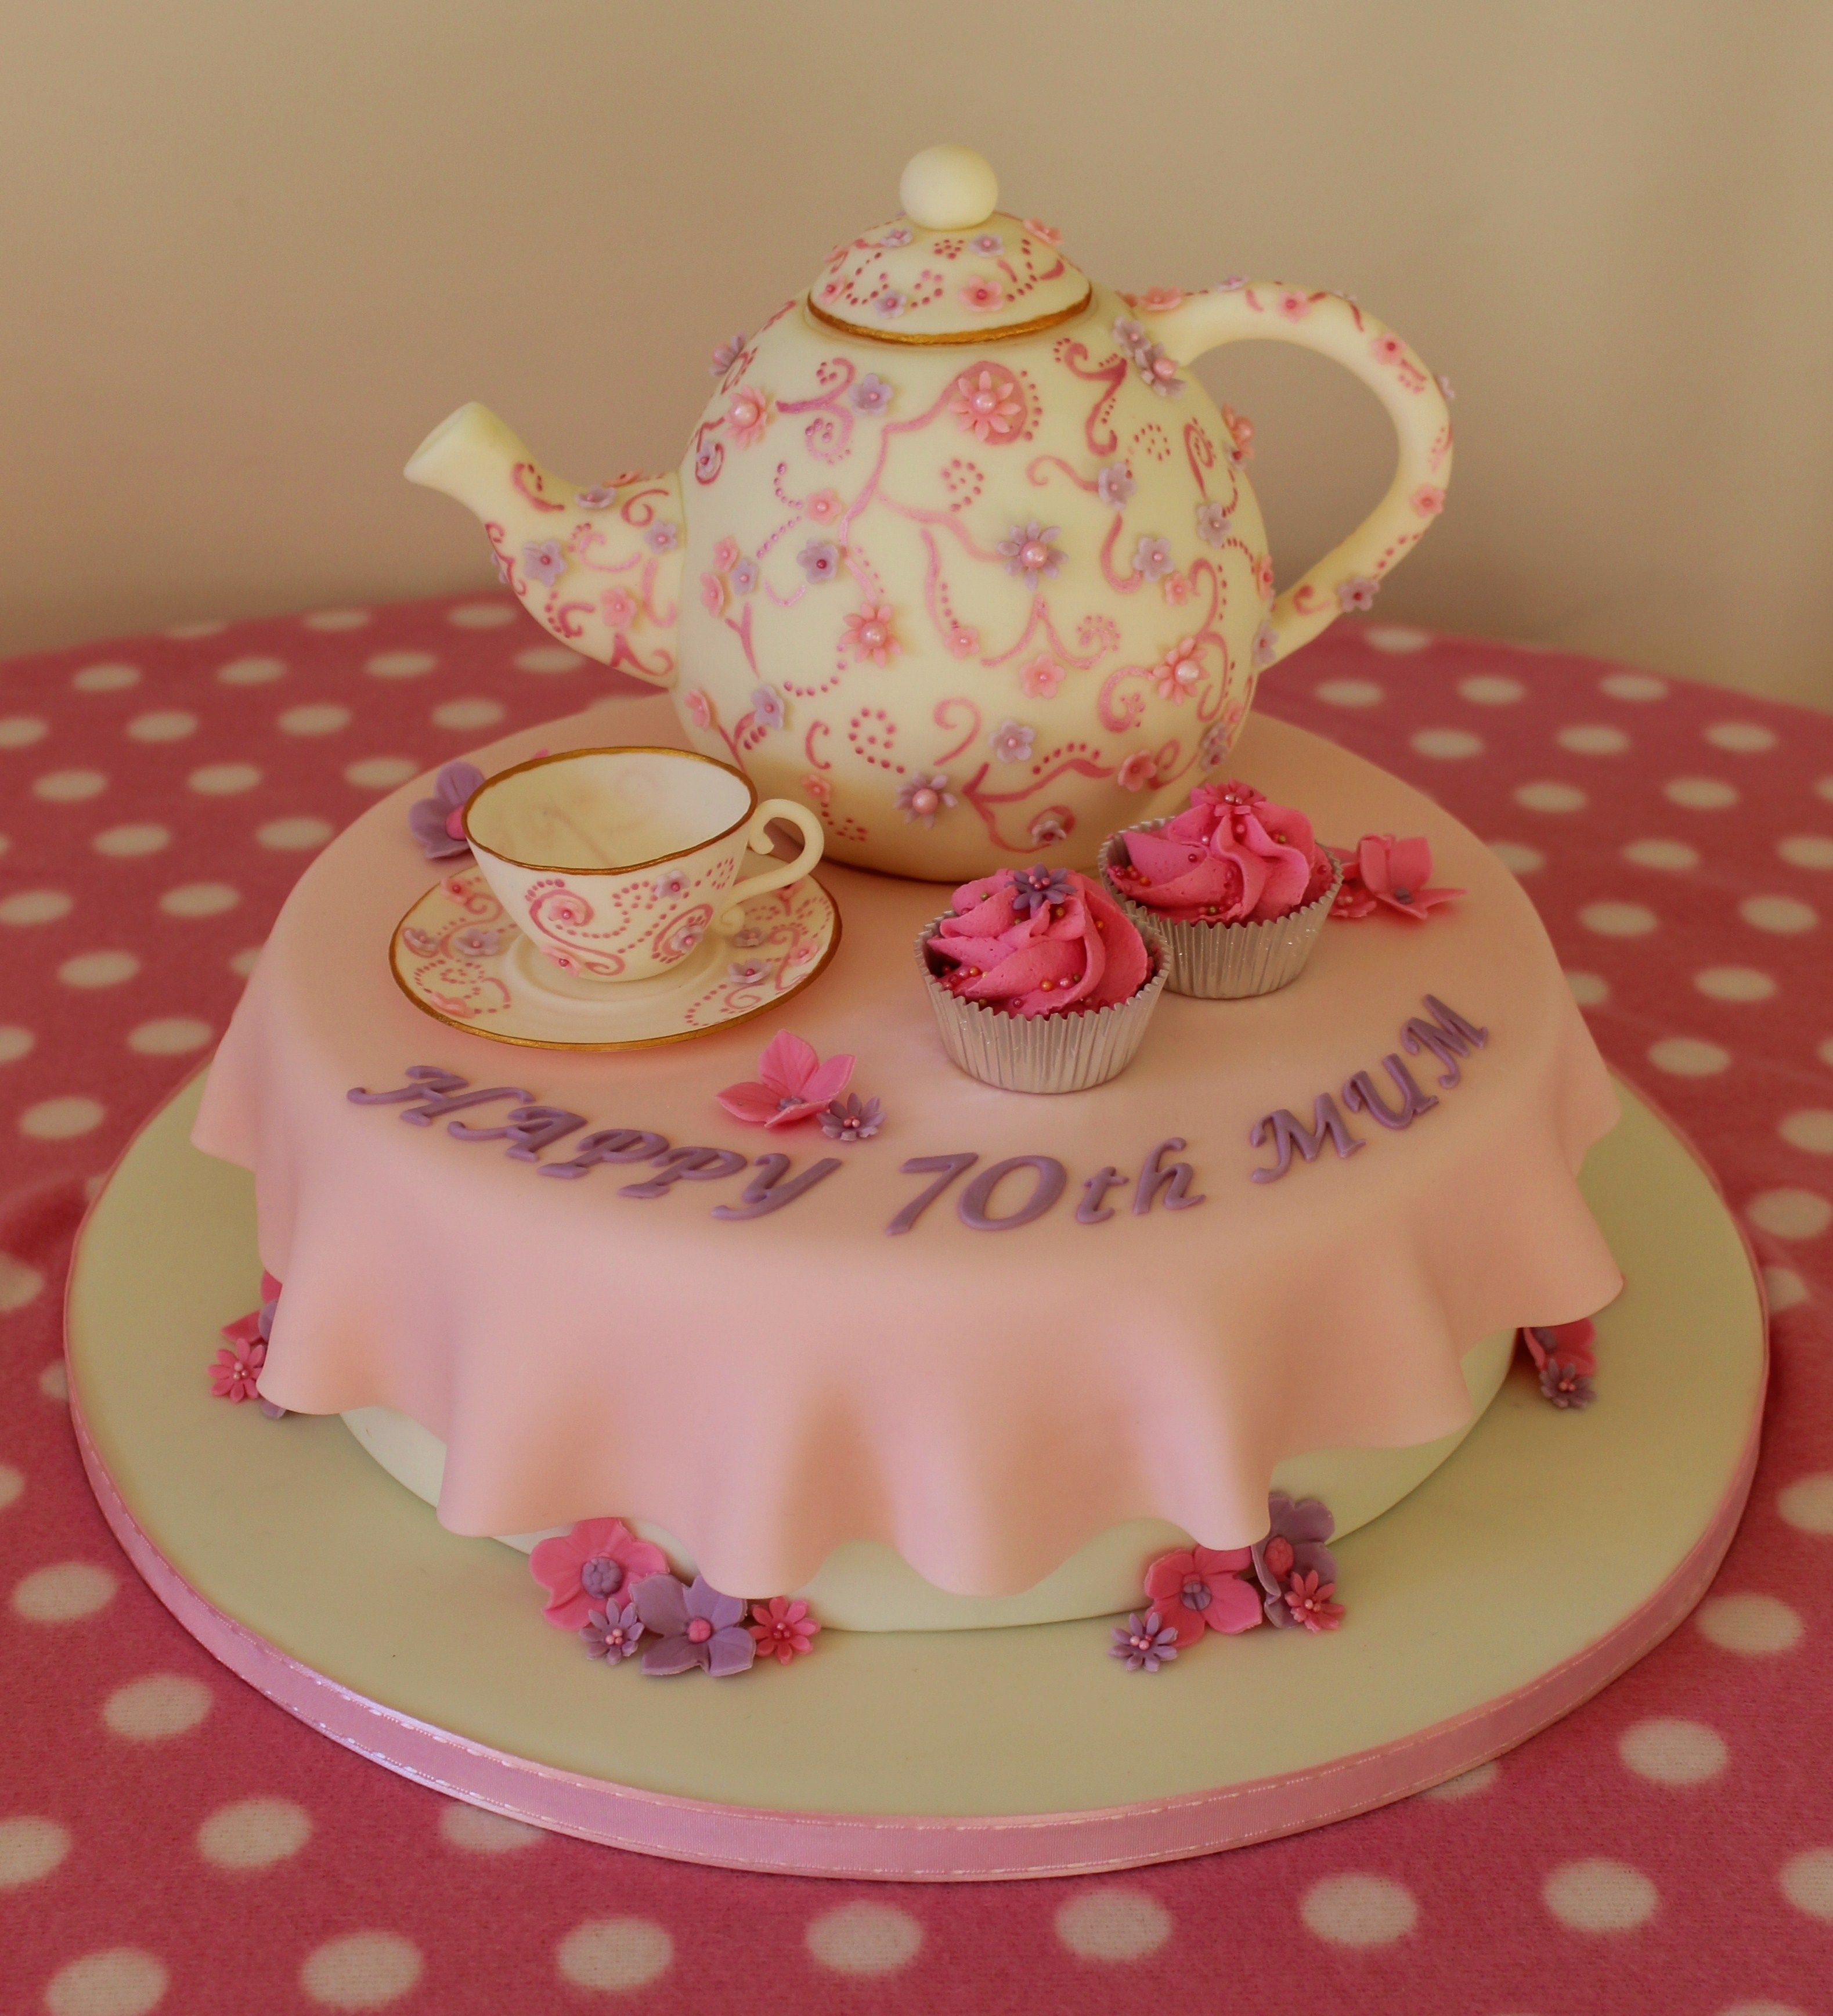 Cool Teapot And Teacup Cake 70Th Birthday Cake With Cupcakes Pink And Personalised Birthday Cards Cominlily Jamesorg